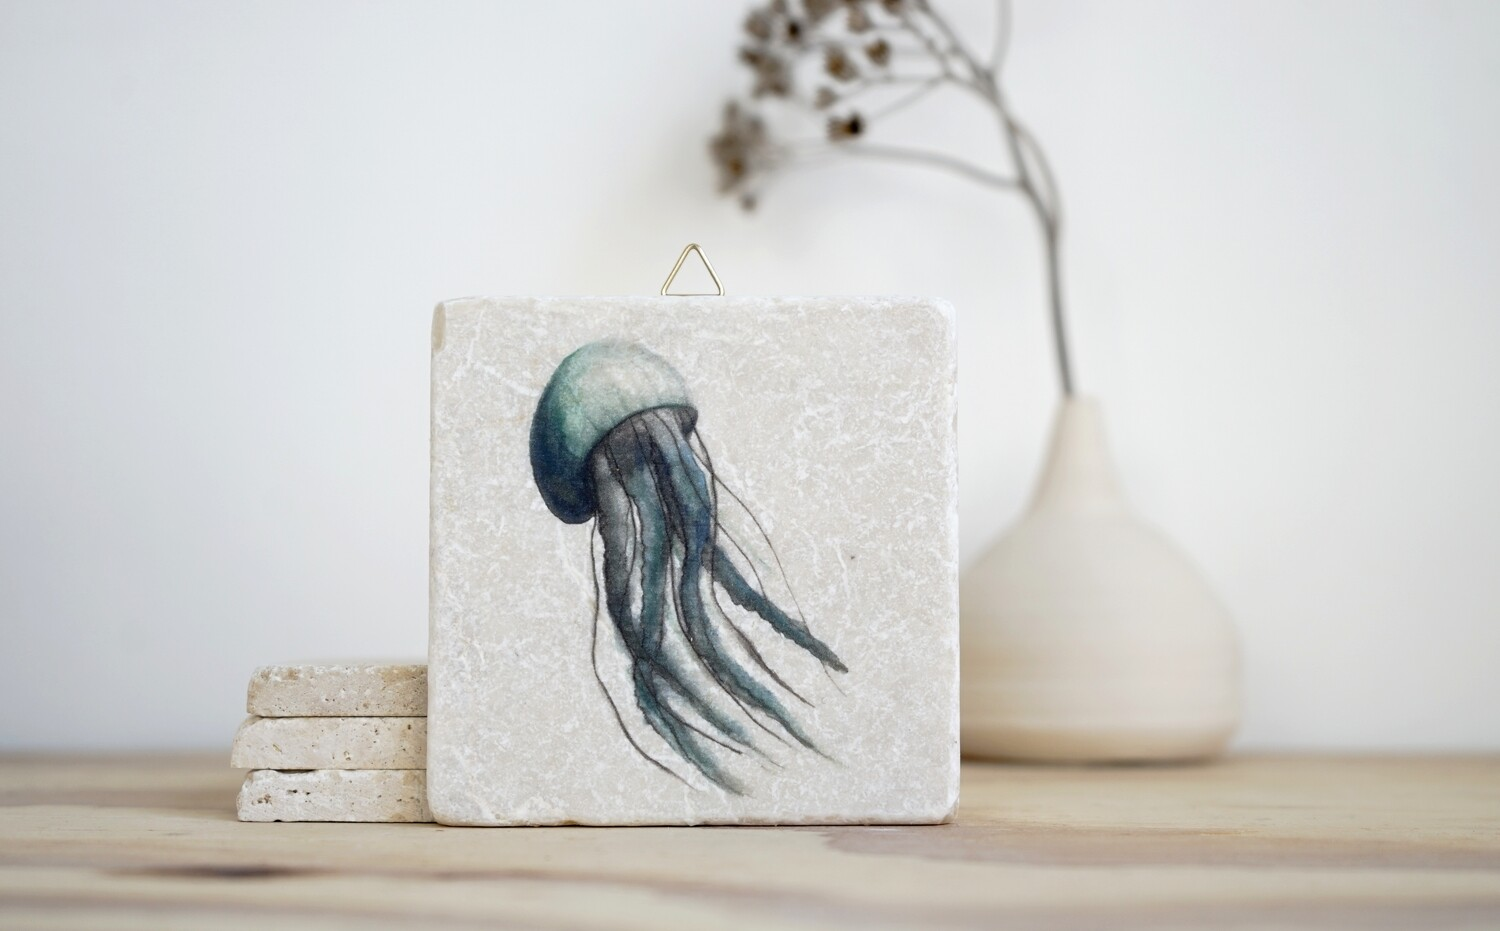 evimstore | Printed Natural Stone Tile - Jellyfish